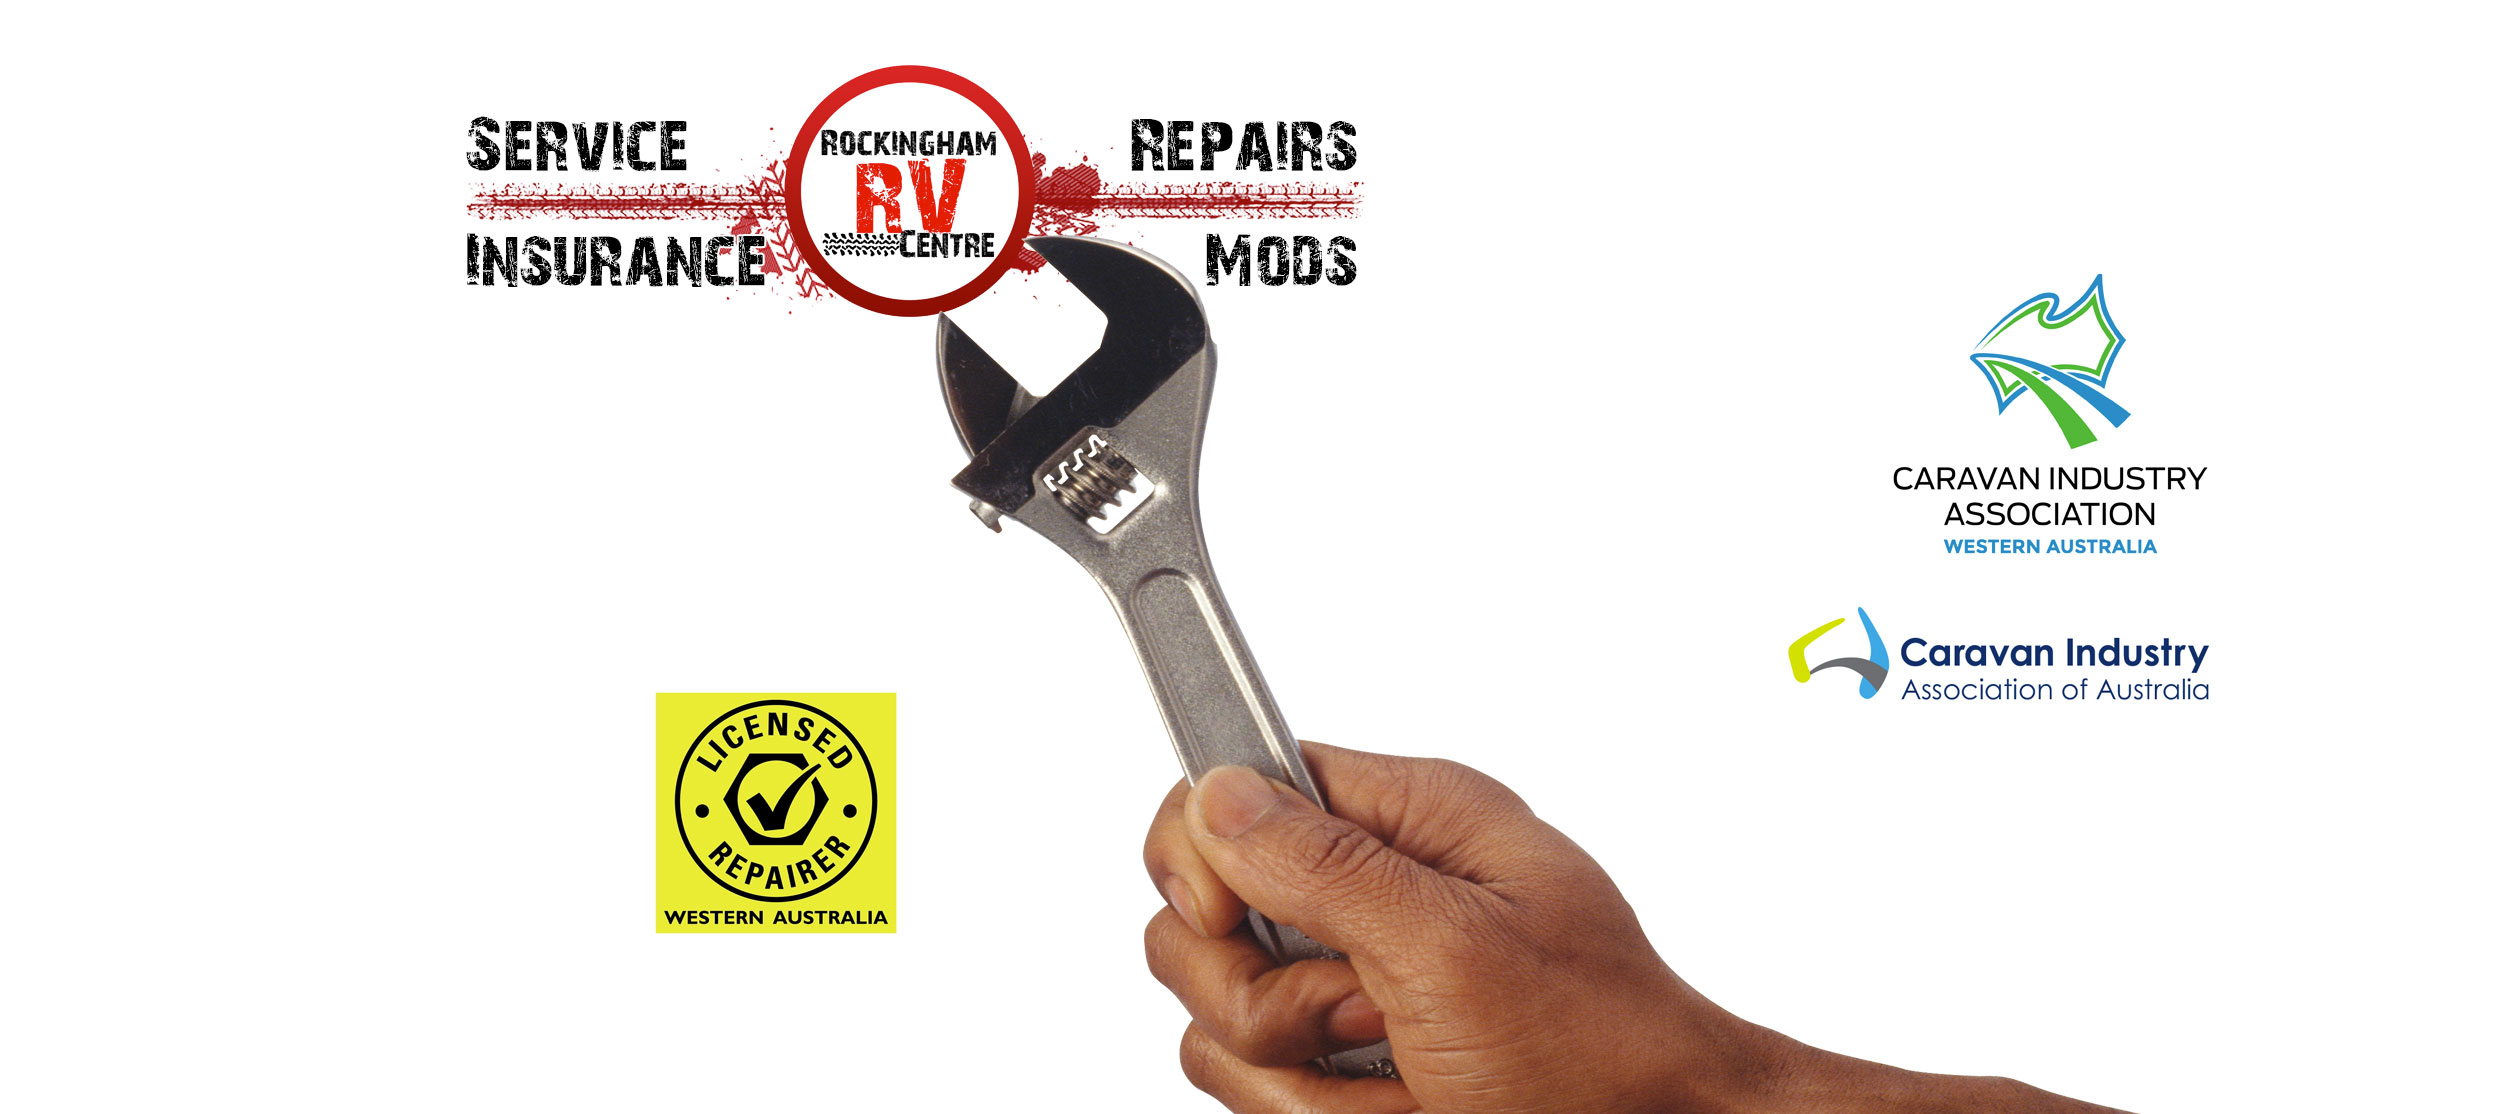 Caravan Repairs, Upgrades, Mods, Warranty, Insurance and Service